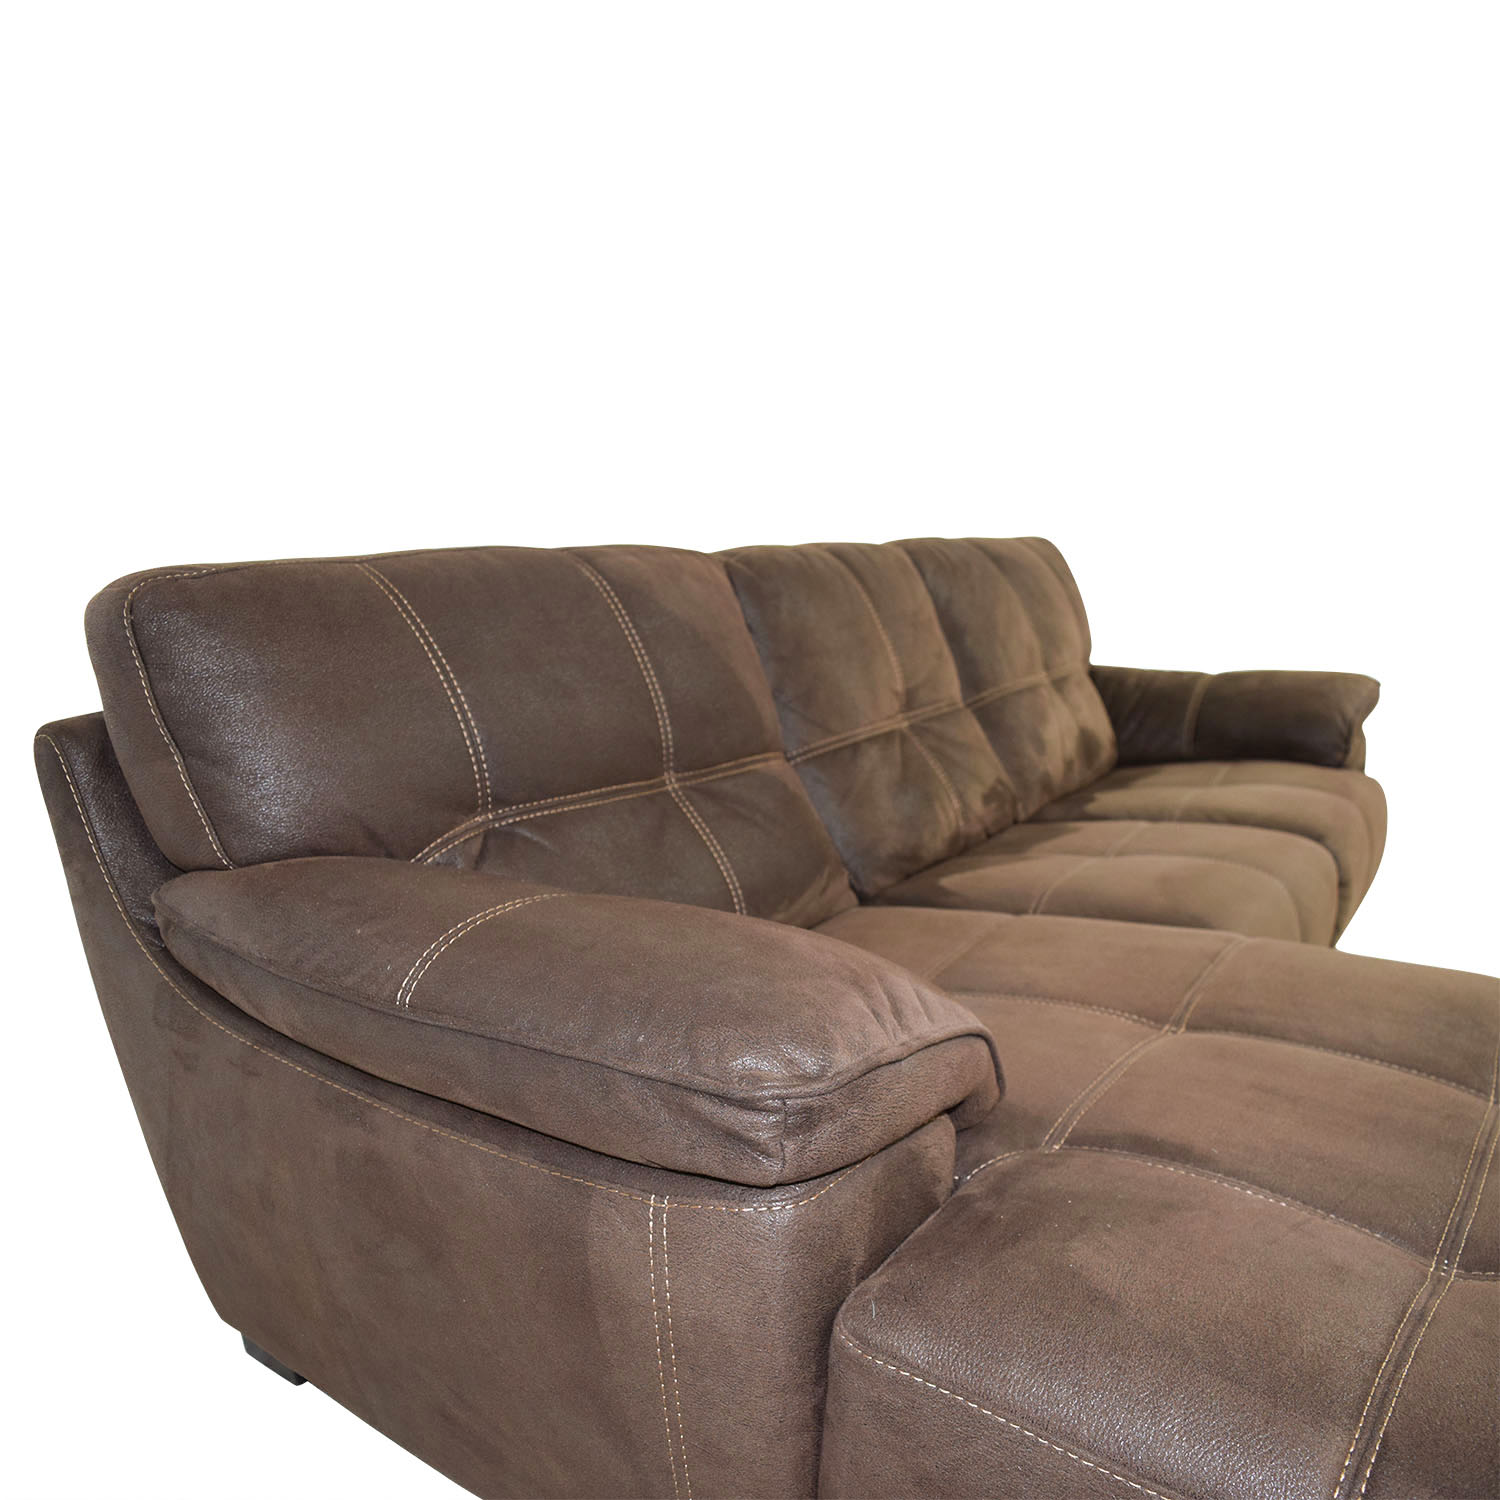 Bettsofa Xenia Sectional Sofa Chaise In Brown Rhino Microfiber Best Material For